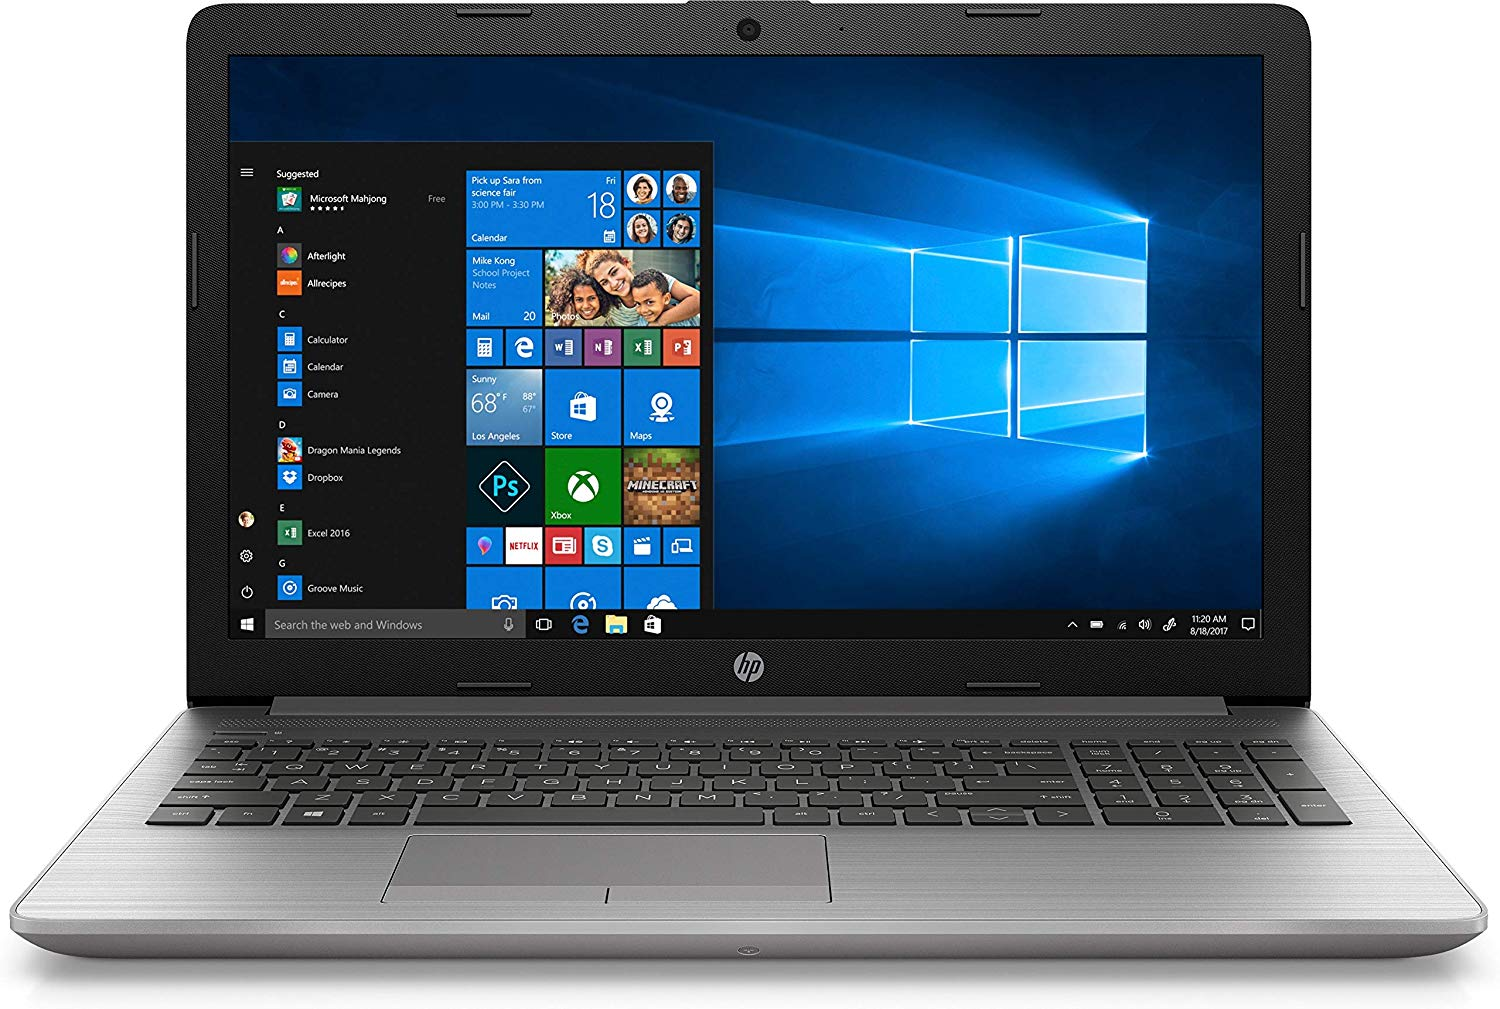 HP G7 laptop